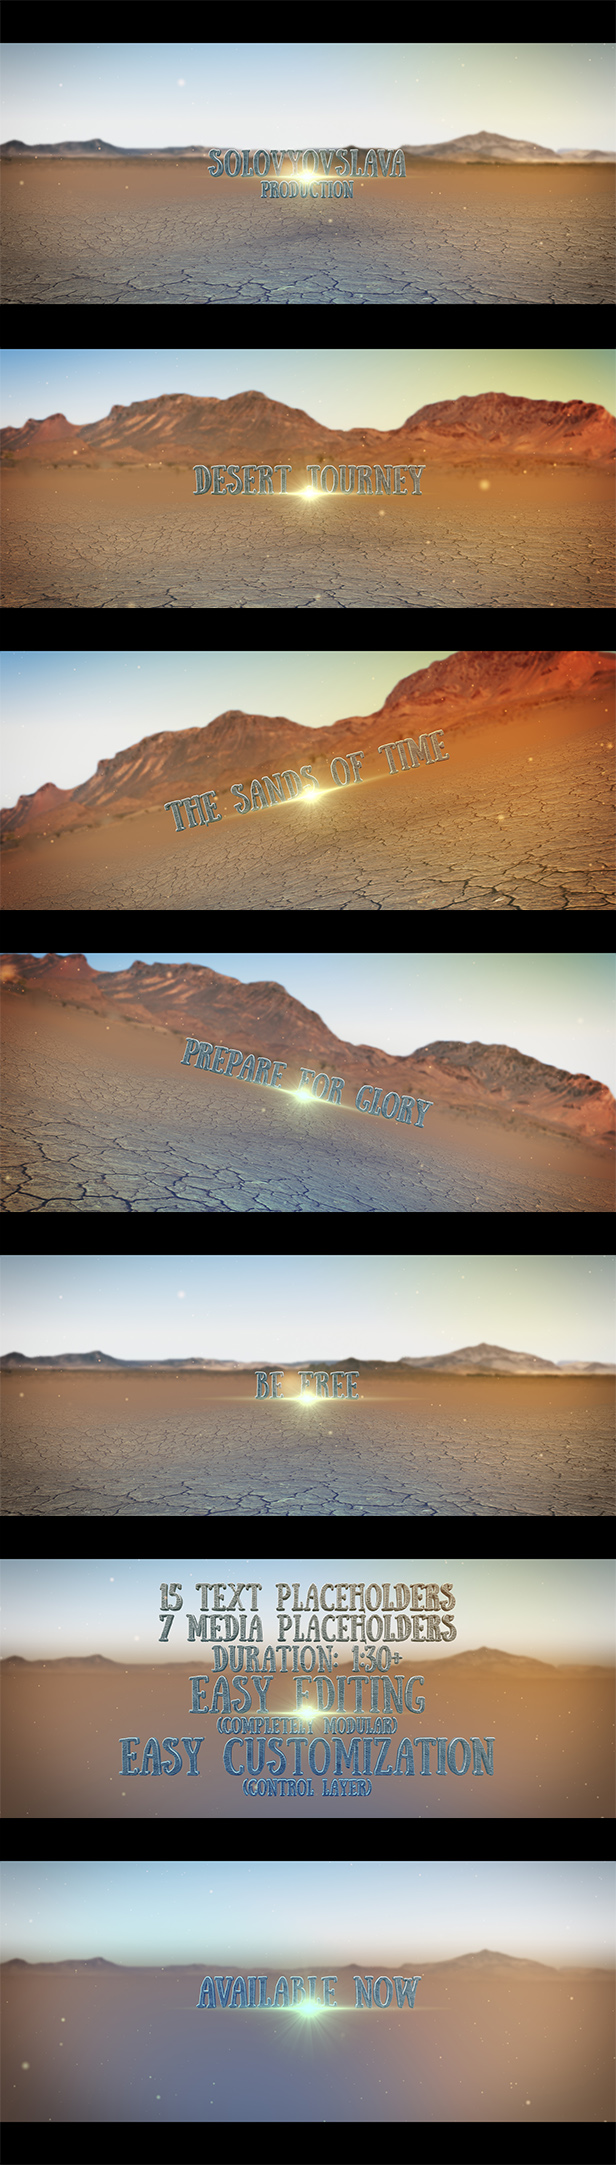 Desert Journey Trailer Titles